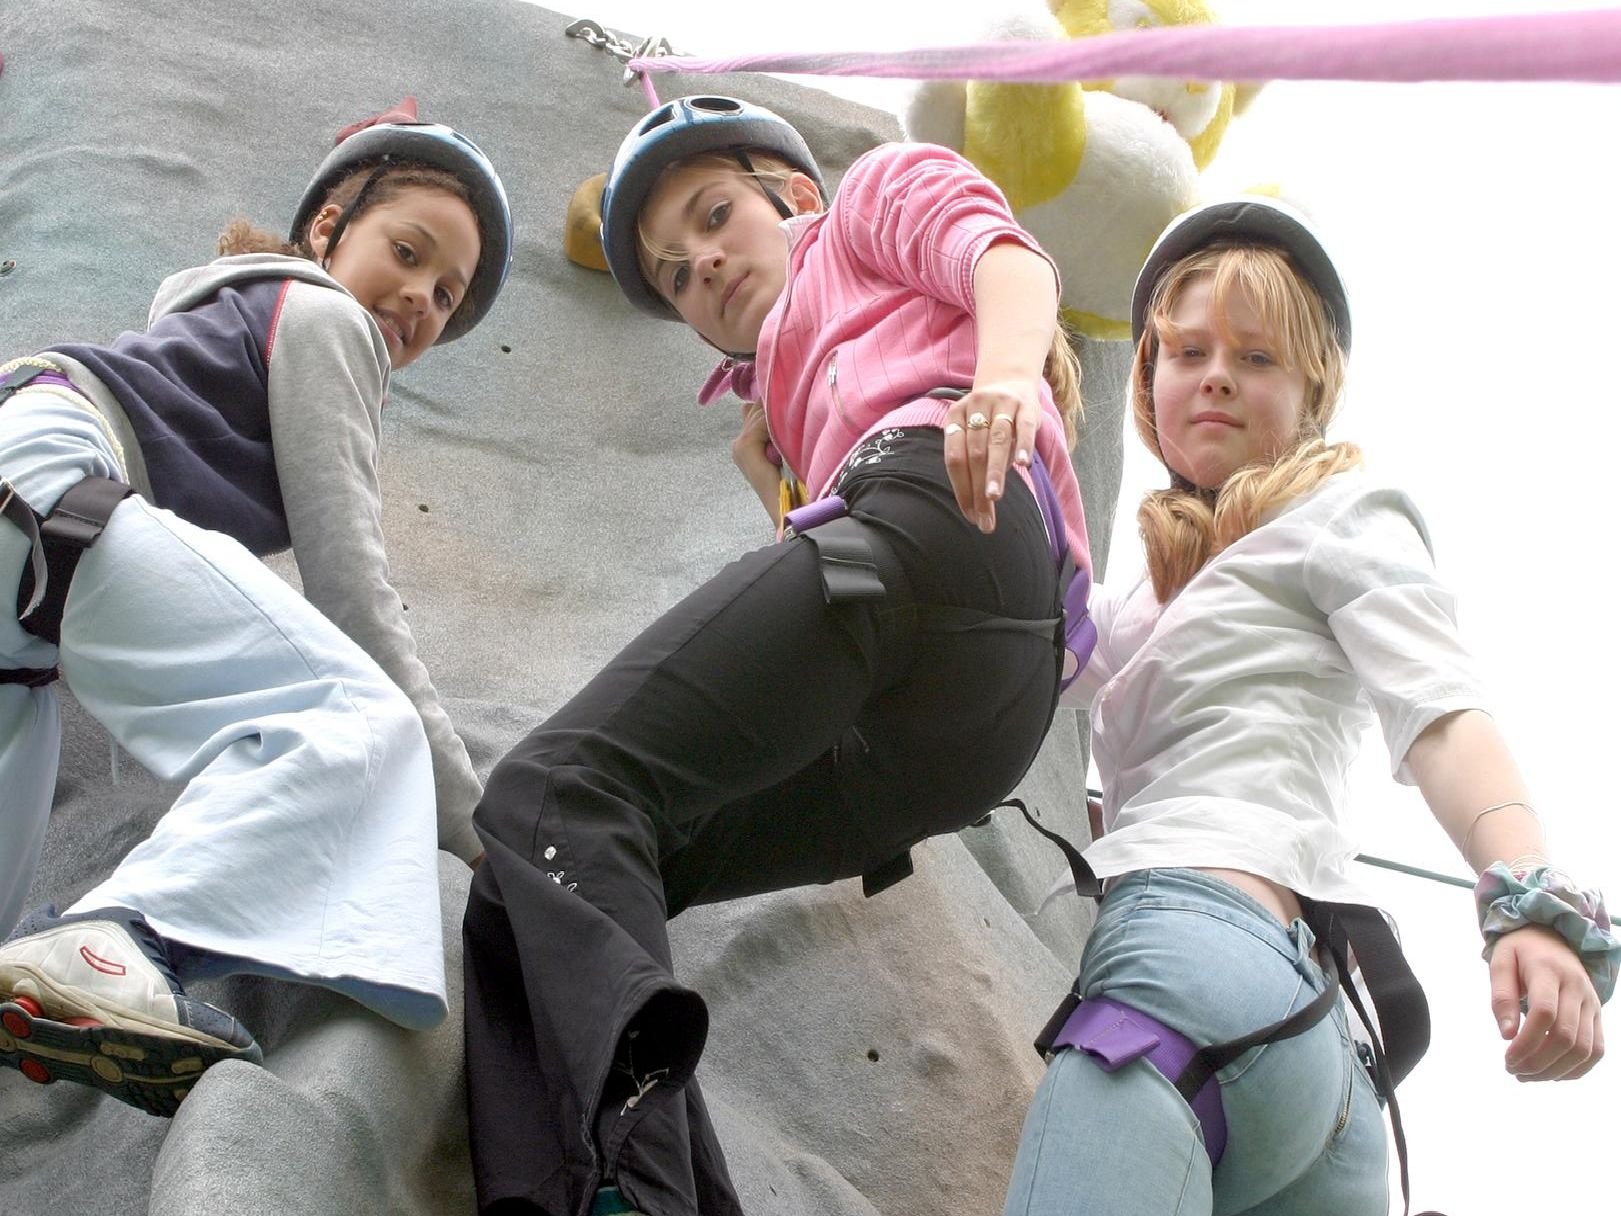 2003: These three girls are enjoying the climbing wall at Whitwell Carnival. Did you have a go at this?